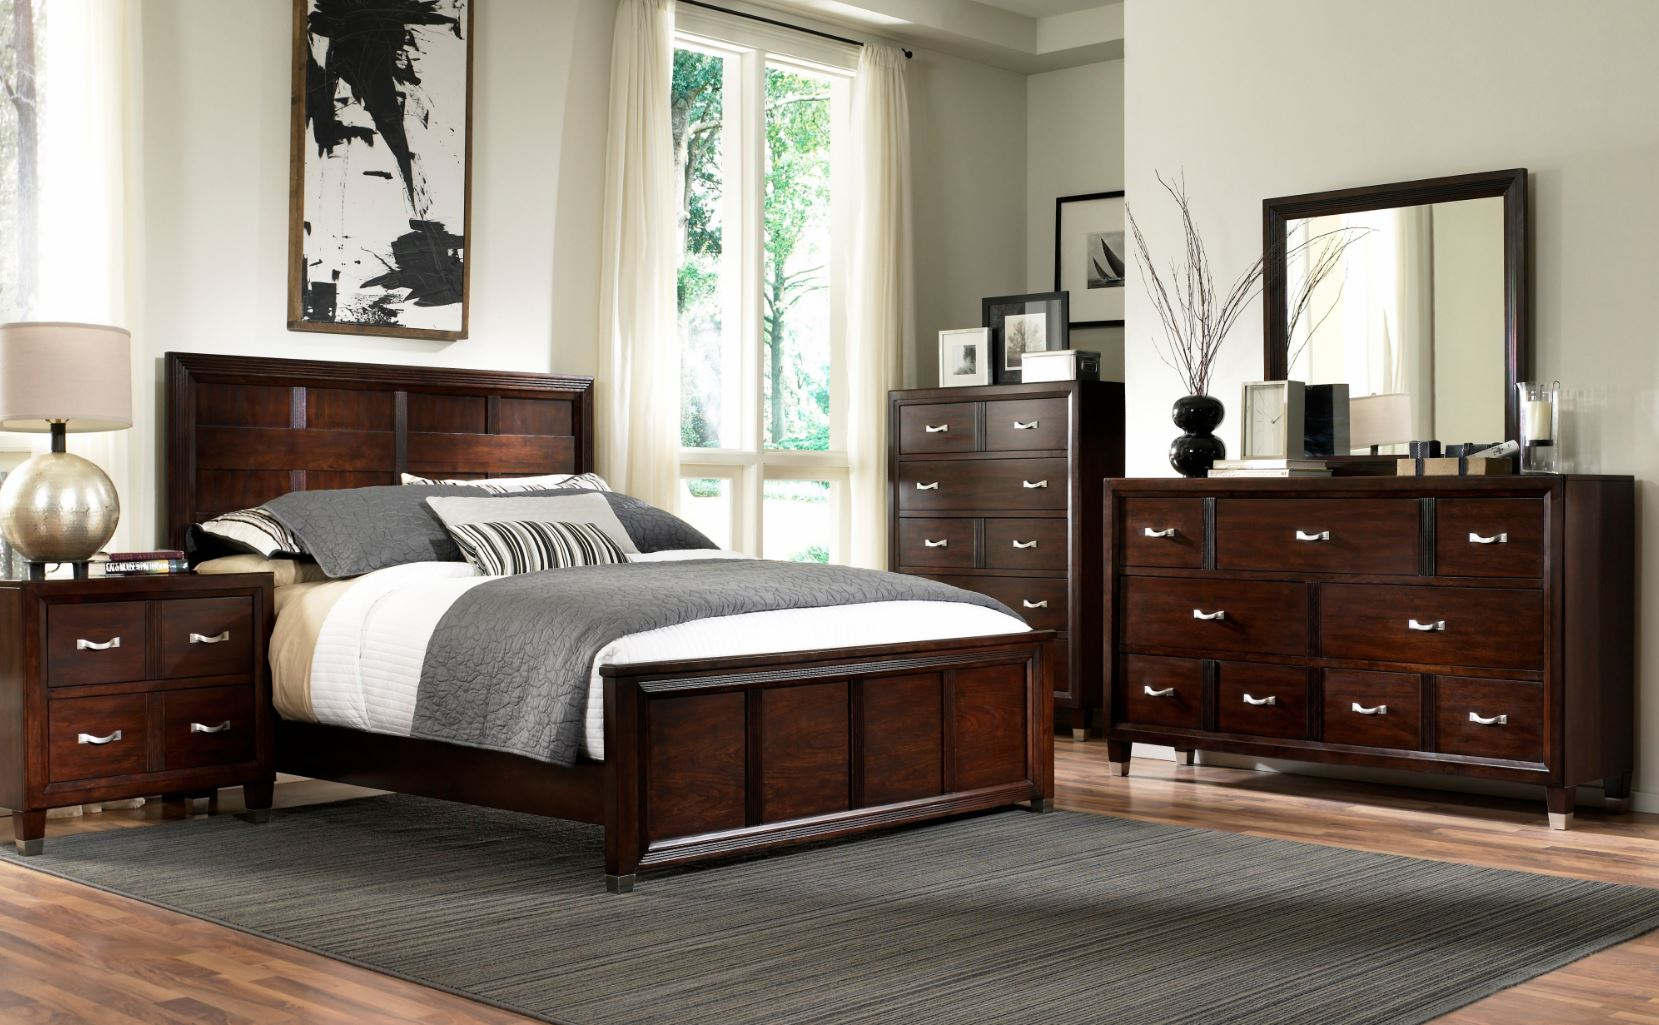 Broyhill Furniture: Quality Craftsmanship & Remarkable Style | Soda Fine